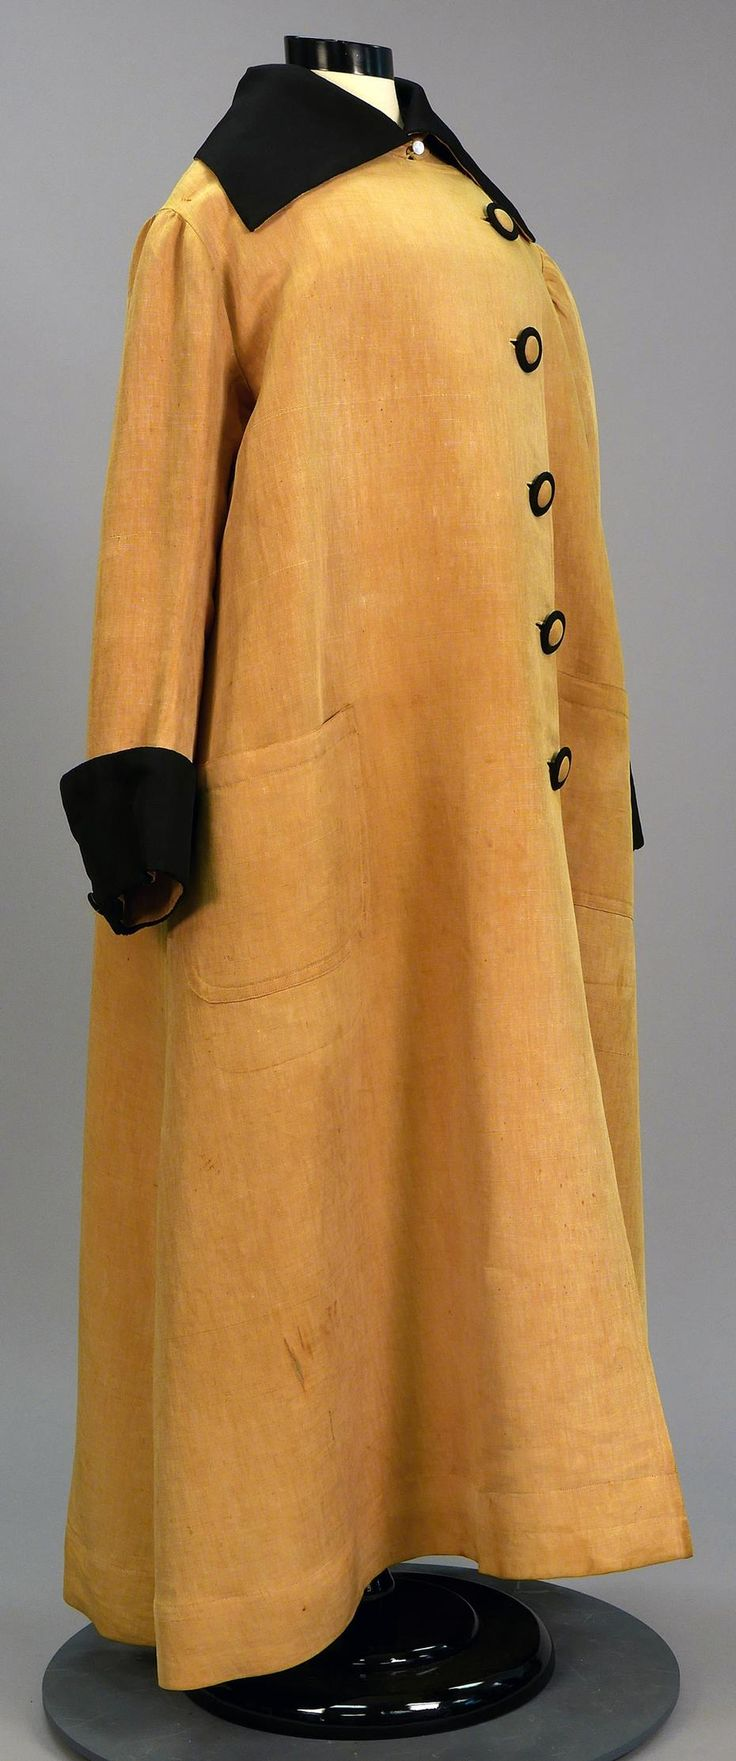 """Driving coat or """"duster,"""" 1900/14, United States. University of North Texas / Texas Fashion Collection."""